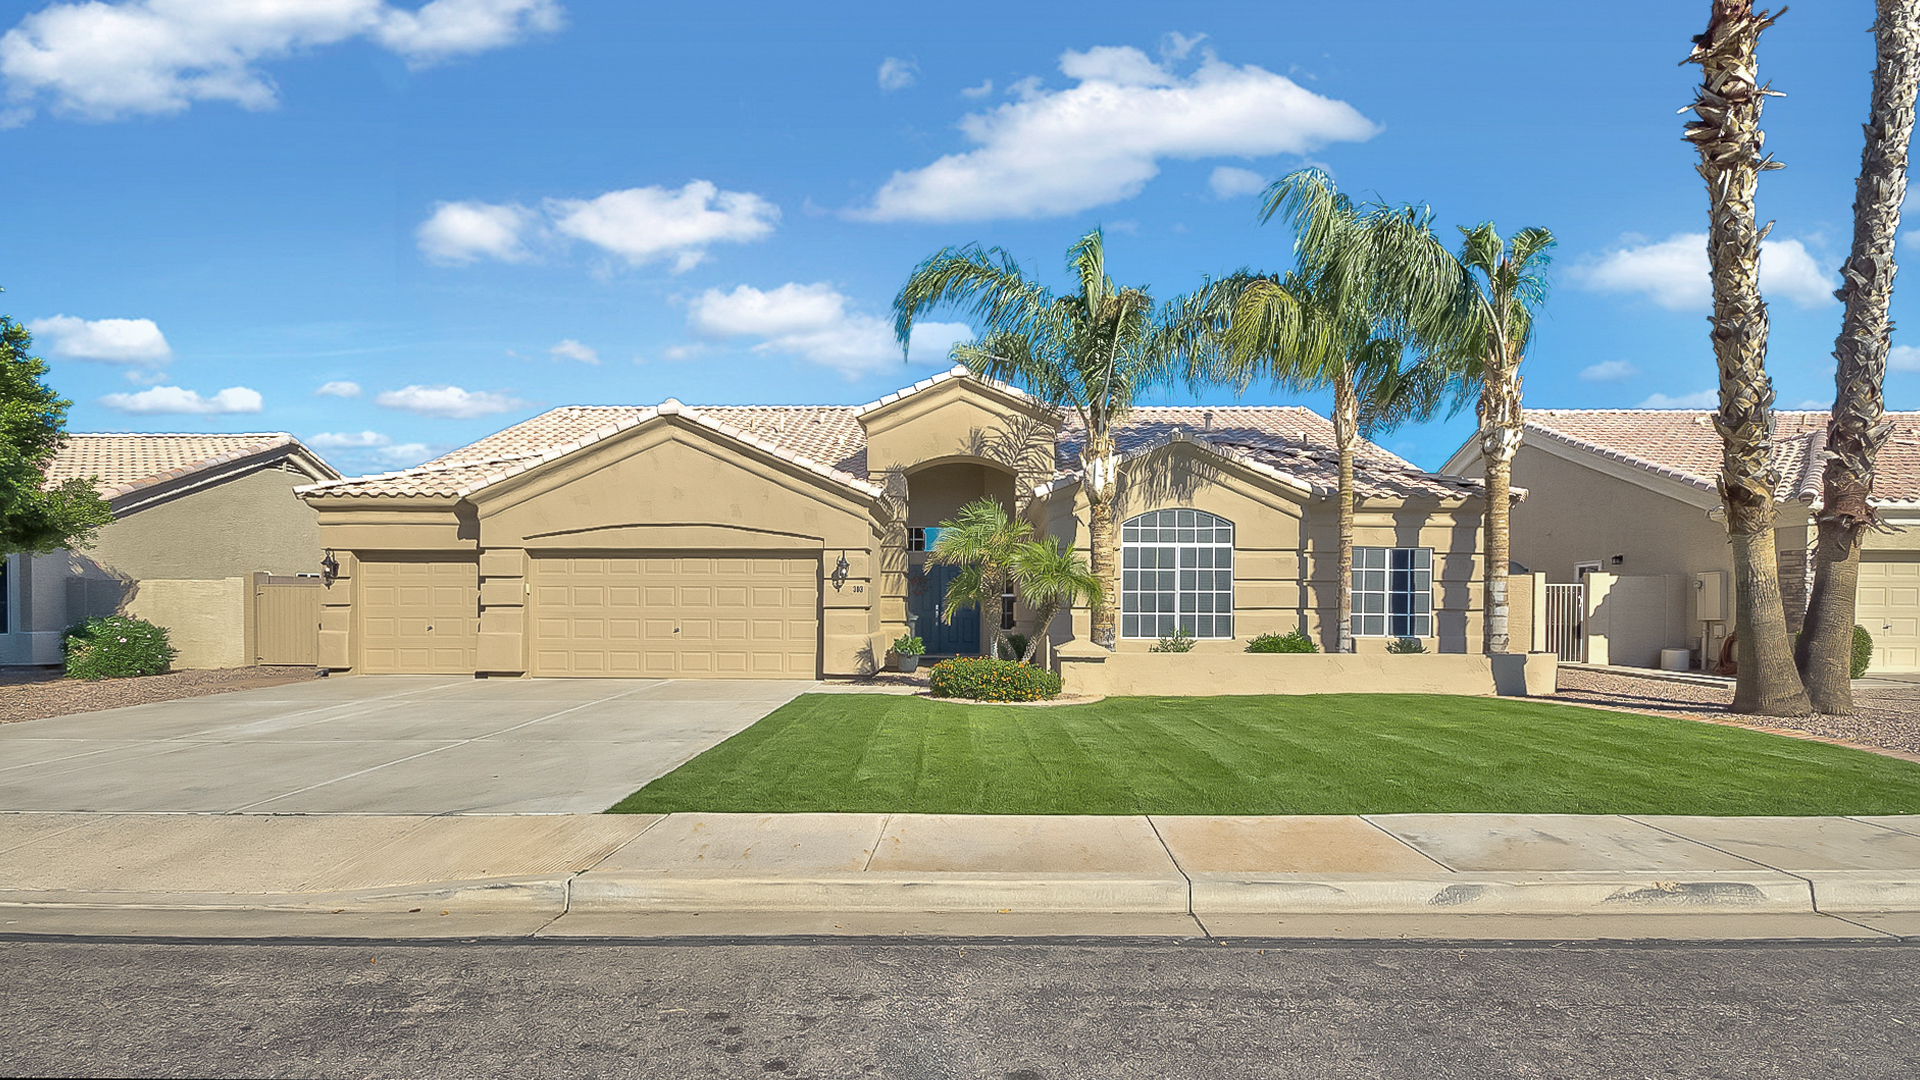 3030 e encanto st 2 612 sf single level 4 bed 2 5 bath home for sale with pool in mesa